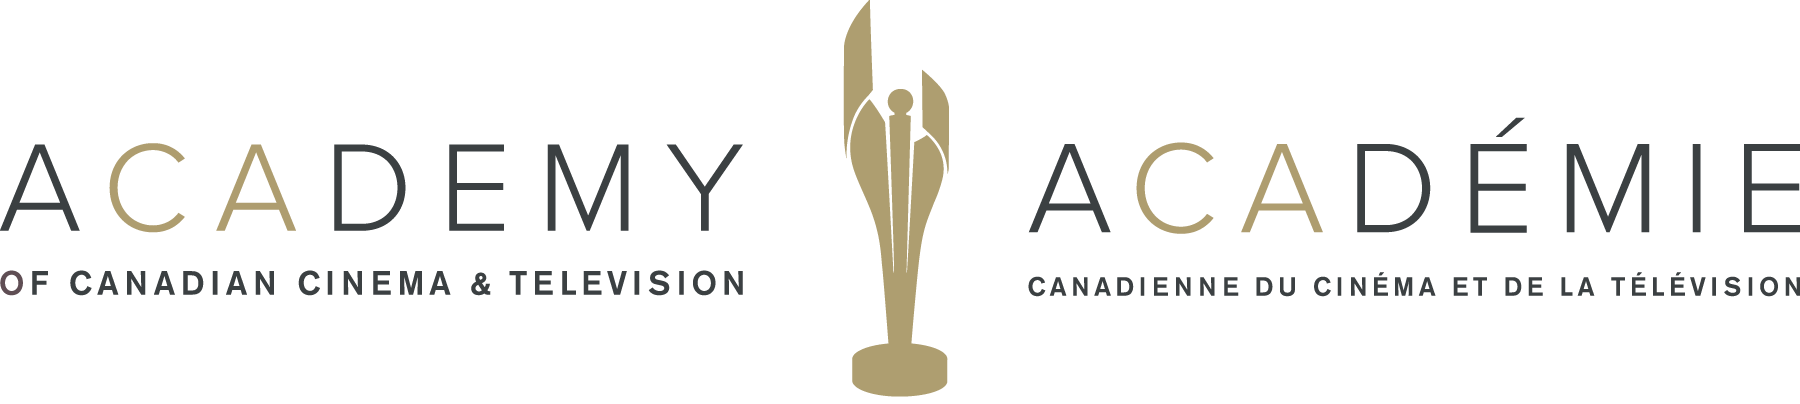 Academy of Canadian Cinema and Television